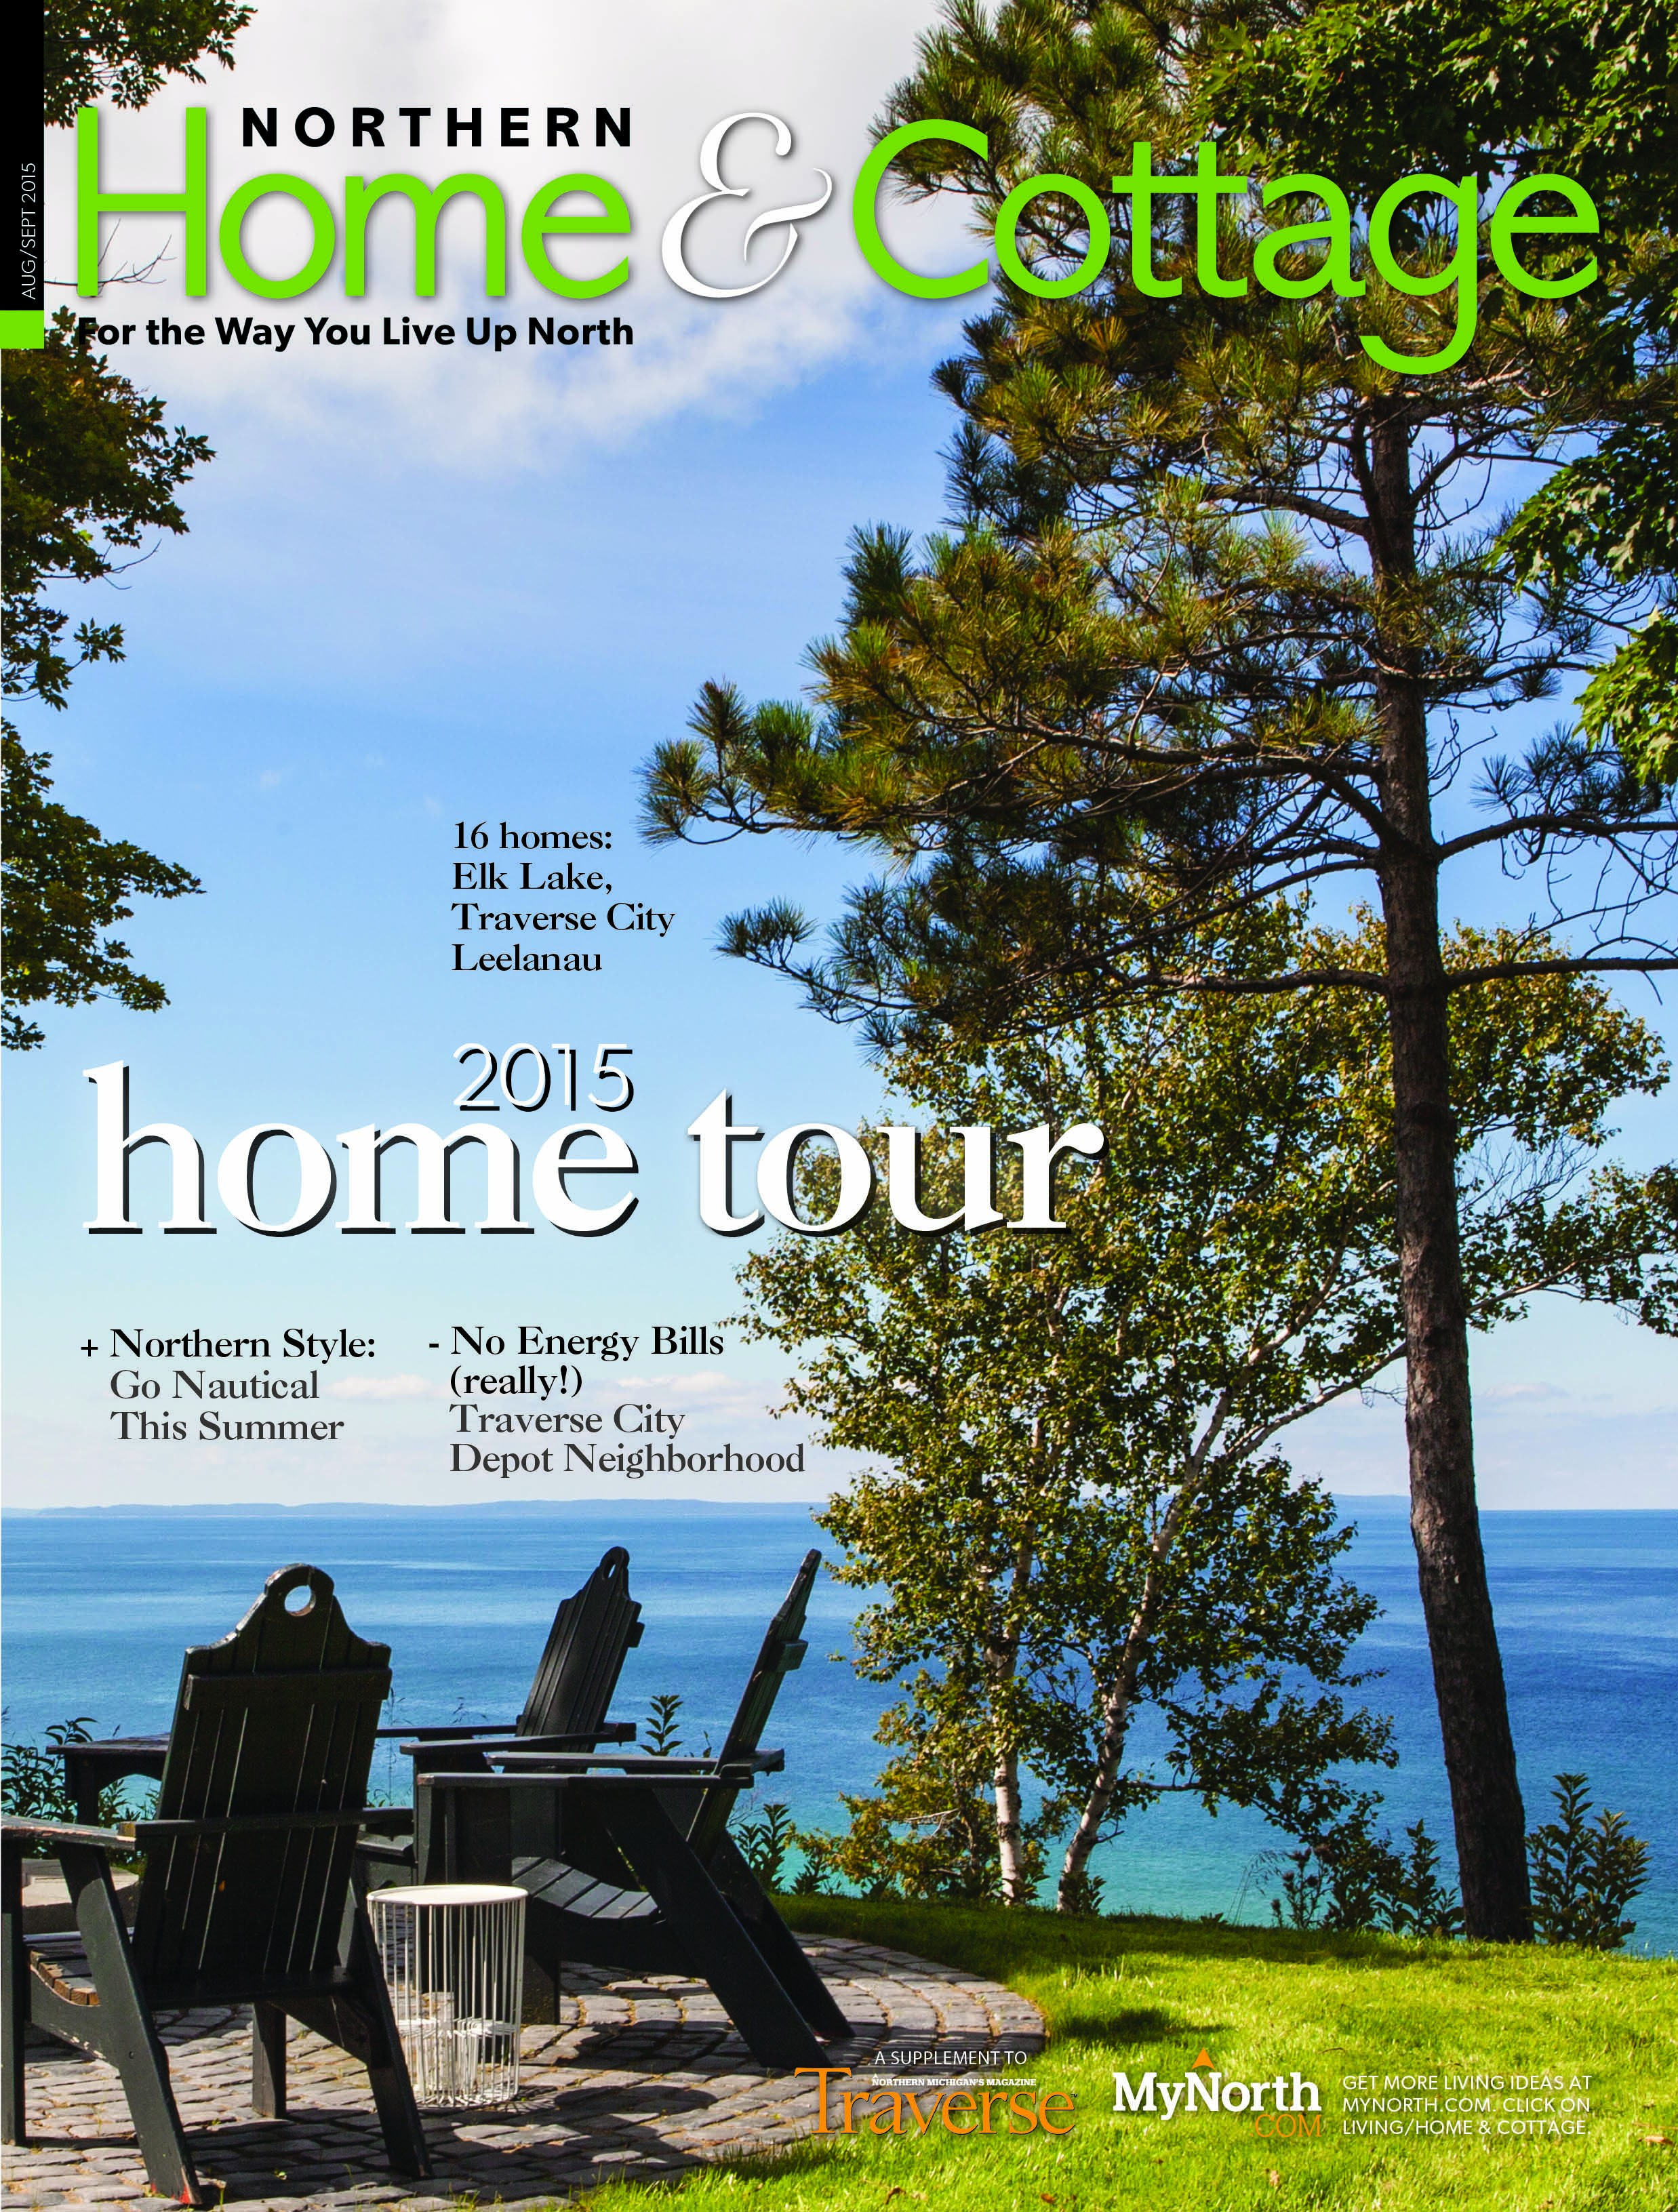 Northern Home & Cottage August 2015